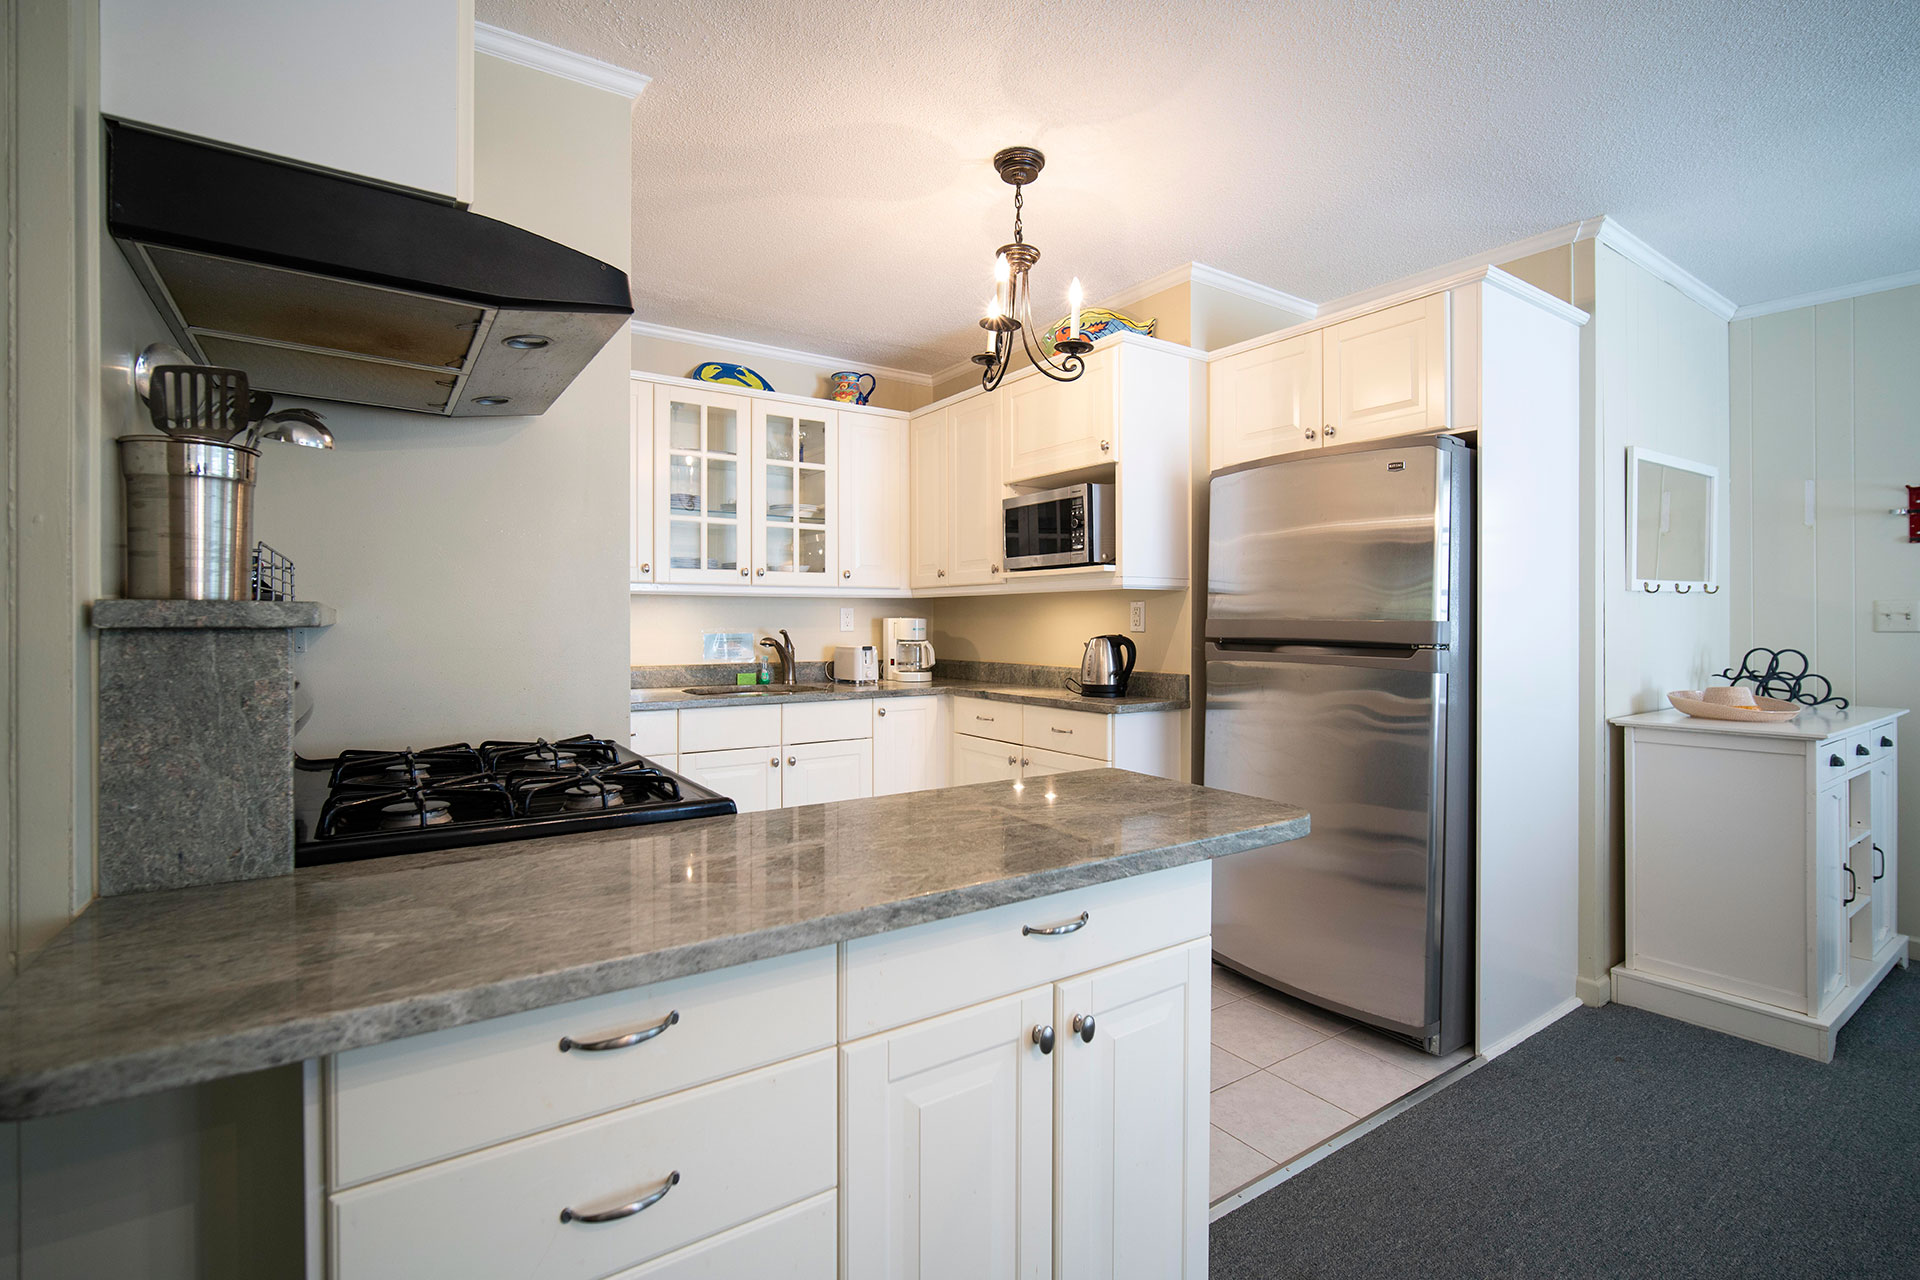 1 Bedroom Hyannis Vacation Rental Cottage Kitchen